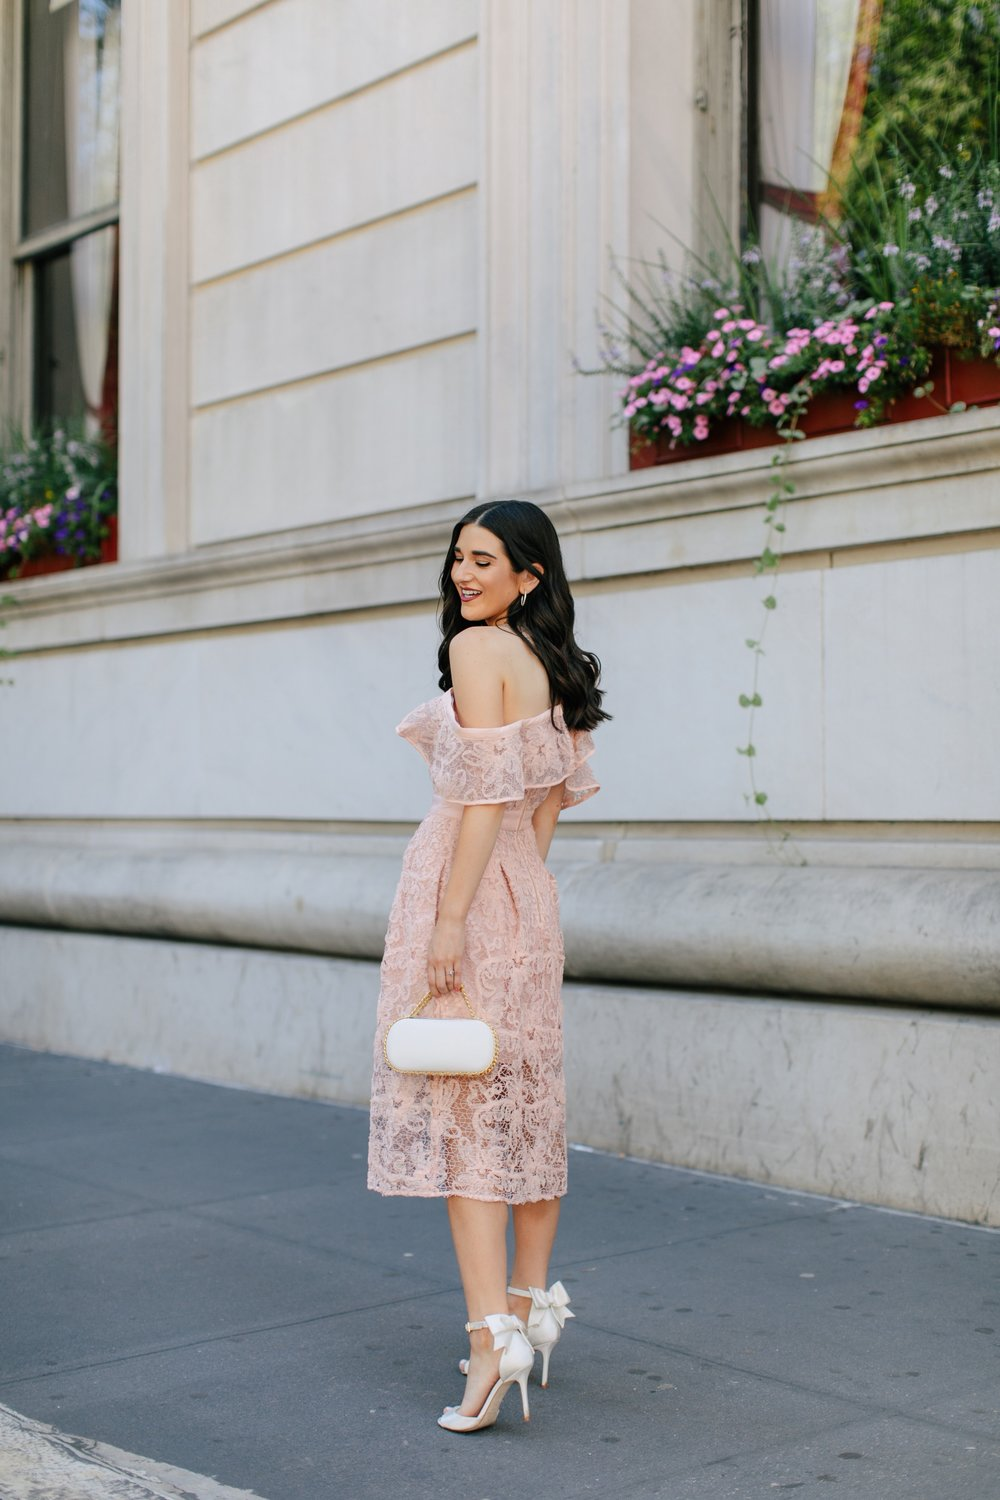 A New Perspective On Instagram Jealousy Pink Lace Dress Ivory Bow Heels Esther Santer Fashion Blog NYC Street Style Blogger Outfit OOTD Trendy White Bag Clutch Self Portrait Designer Kate Spade Wedding Shoes Fancy Elegant Feminine Formal Shopping Wear.jpg